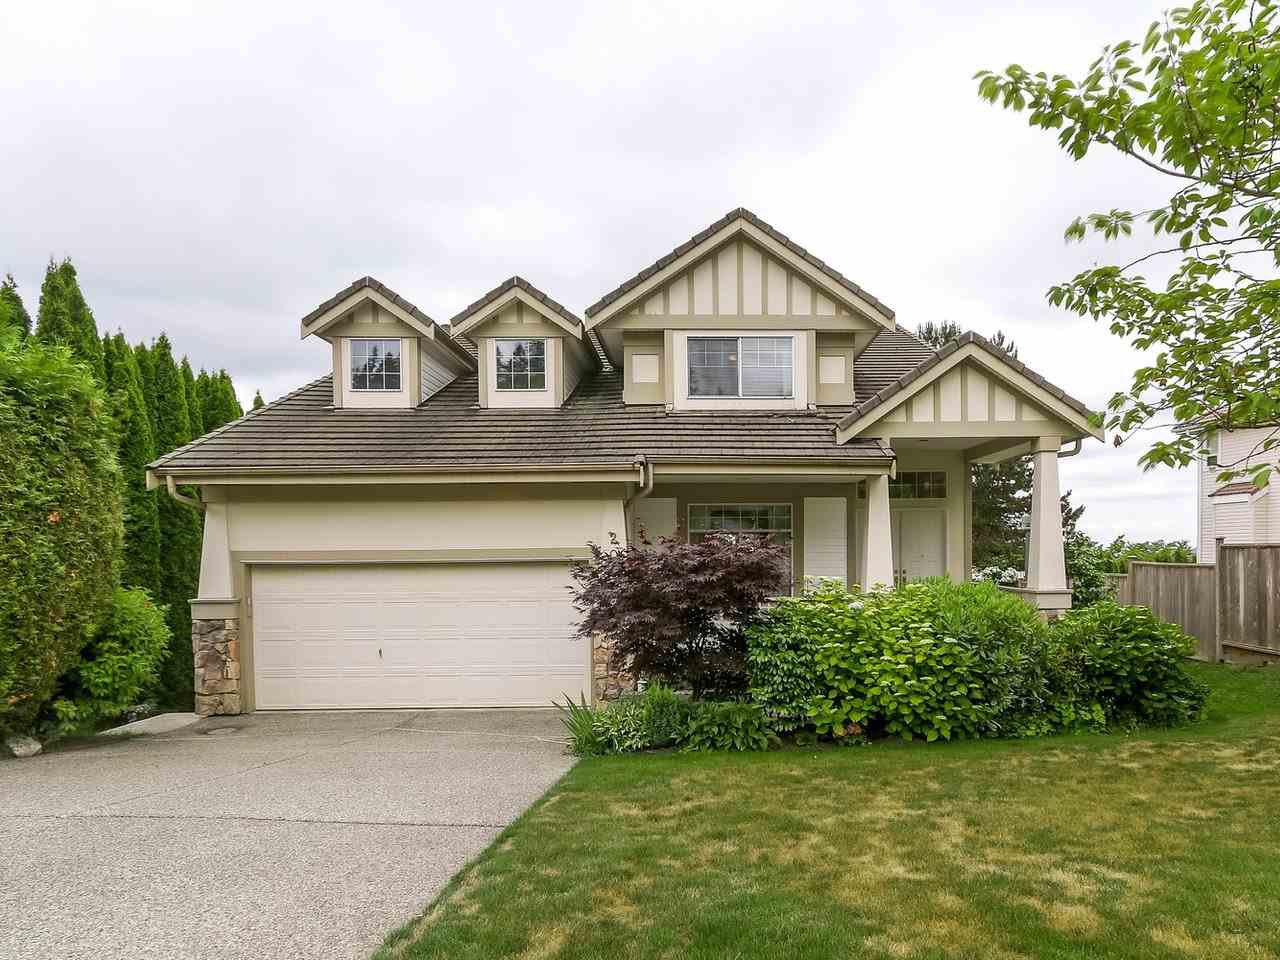 """Main Photo: 208 ASPENWOOD Drive in Port Moody: Heritage Woods PM House for sale in """"Heritage Woods"""" : MLS®# R2396270"""